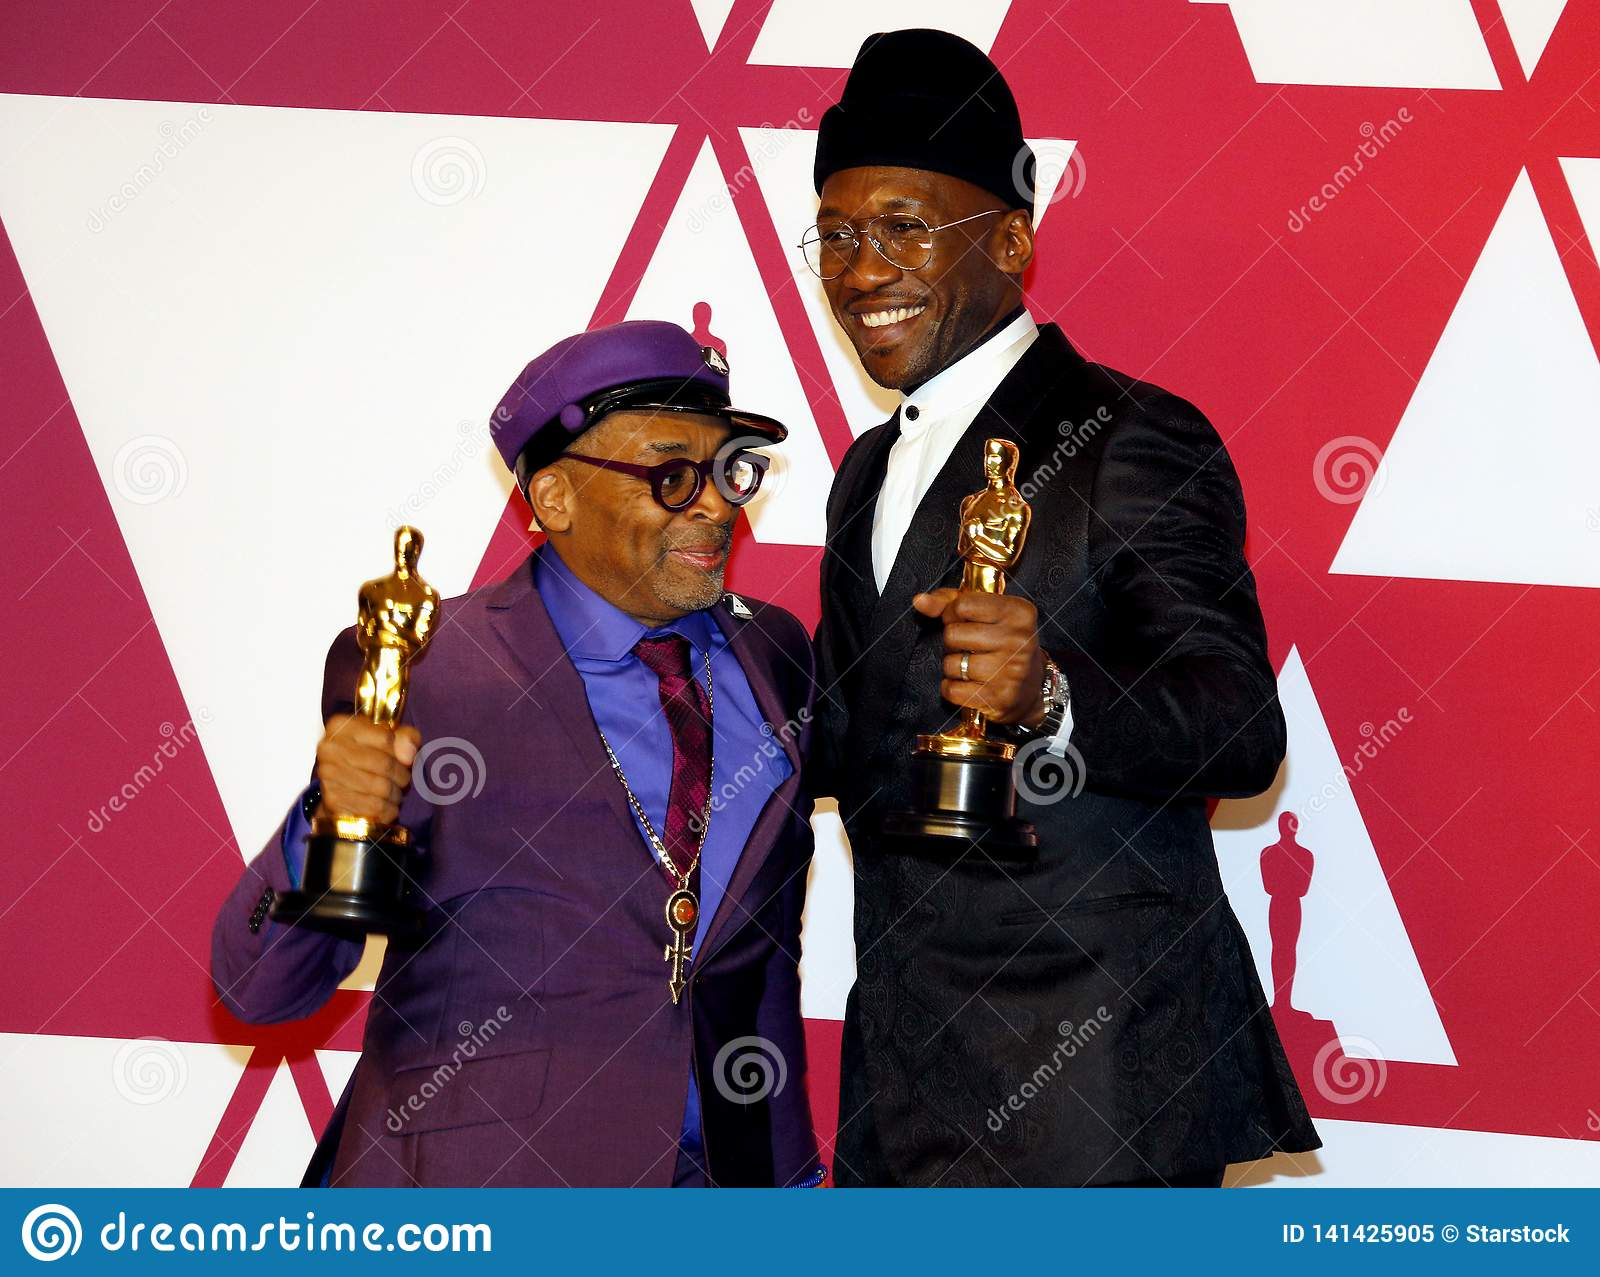 Spike Lee et Mahershala Ali